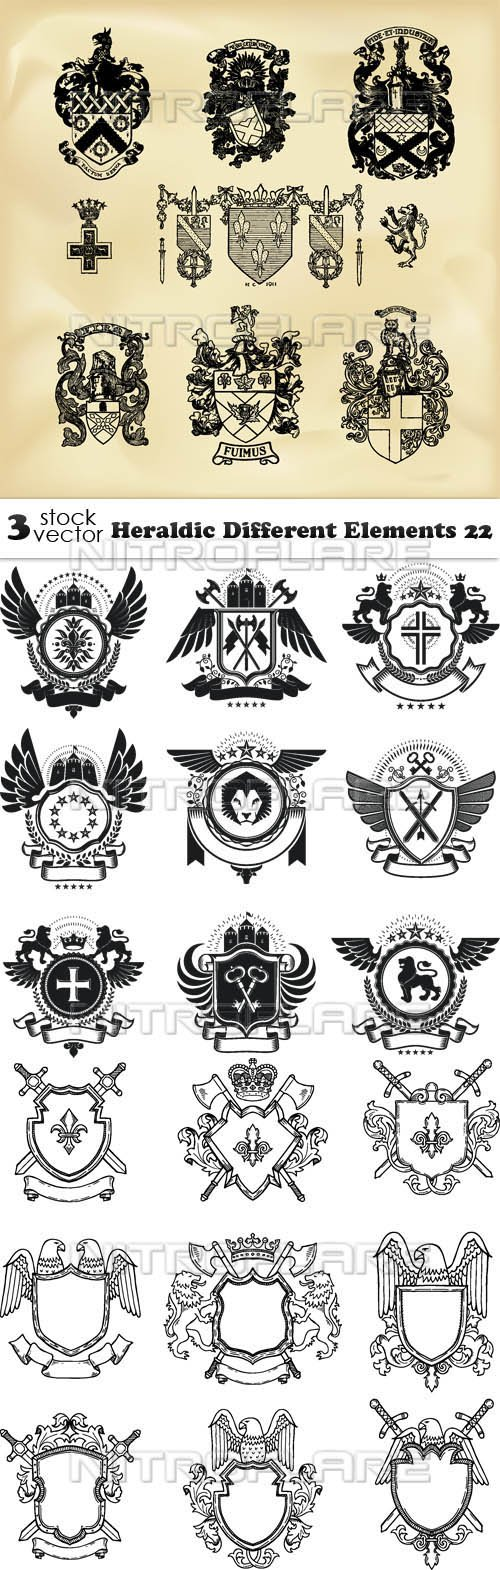 Vectors - Heraldic Different Elements 22